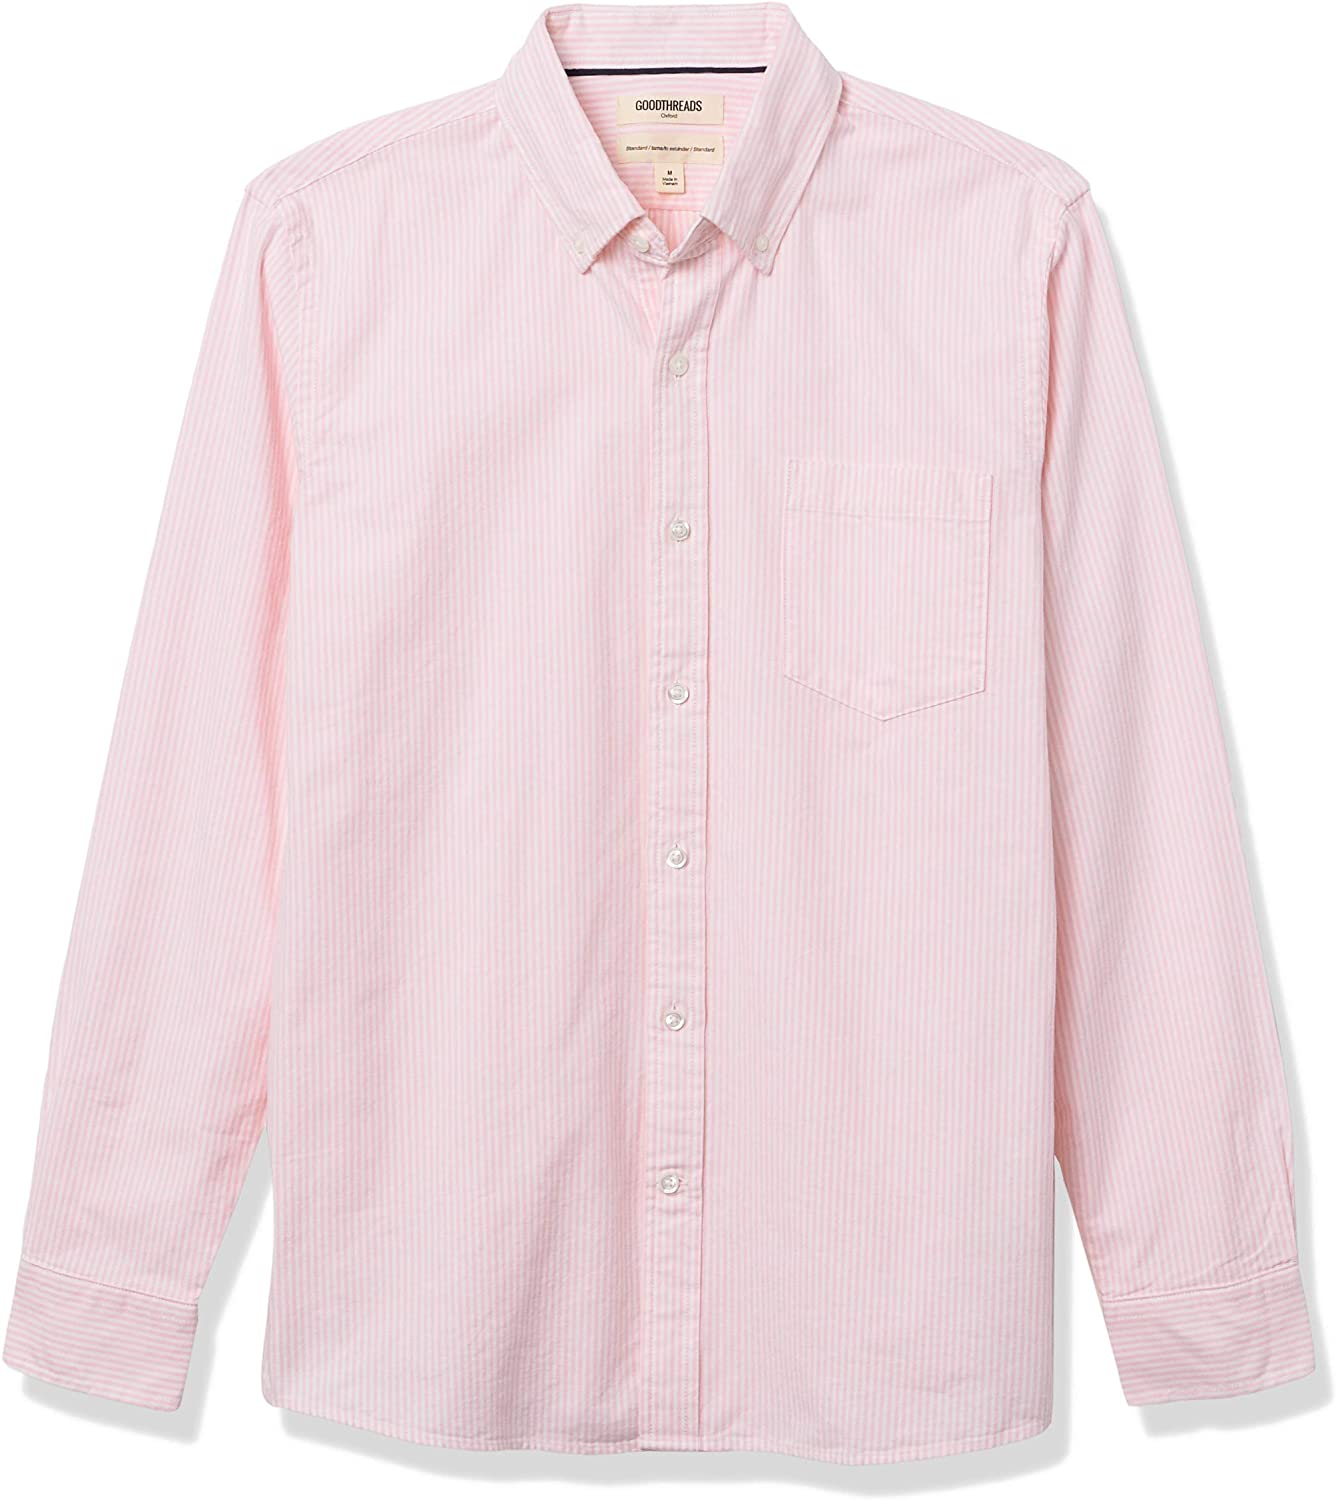 Amazon Brand - Goodthreads Men's Standard-Fit Long Sleeve Oxford Shirt with Pocket